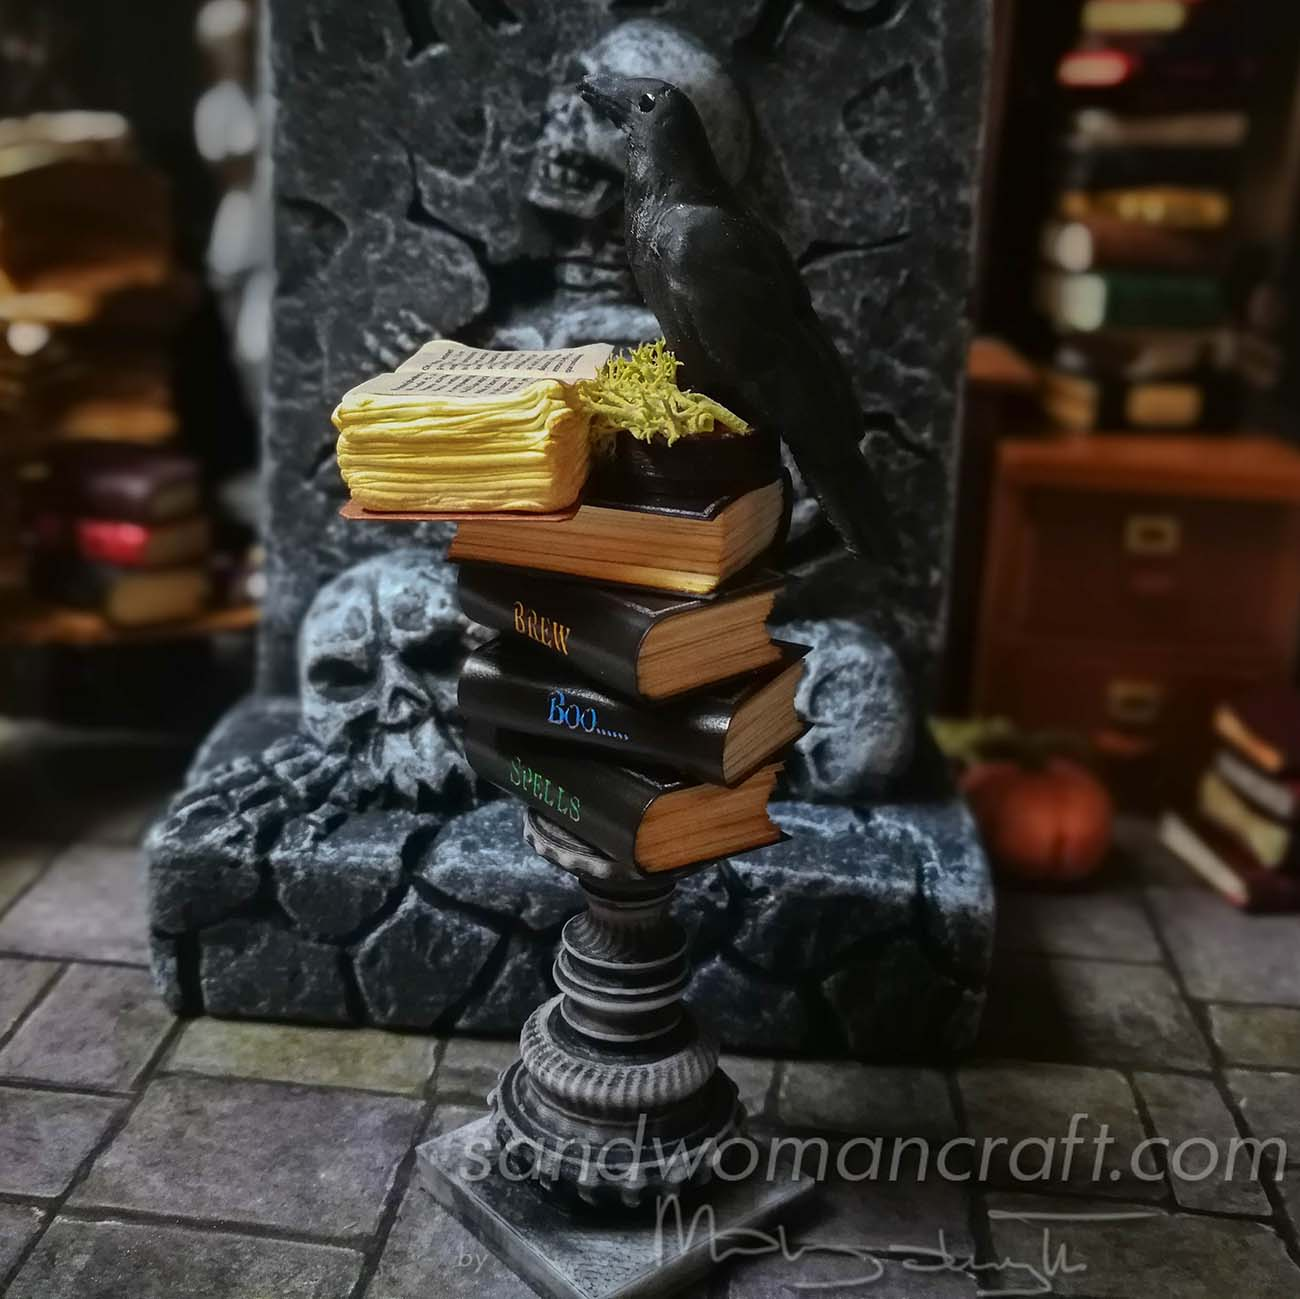 Stack contains clack tomes as Boo, Spells, Potions and Brew